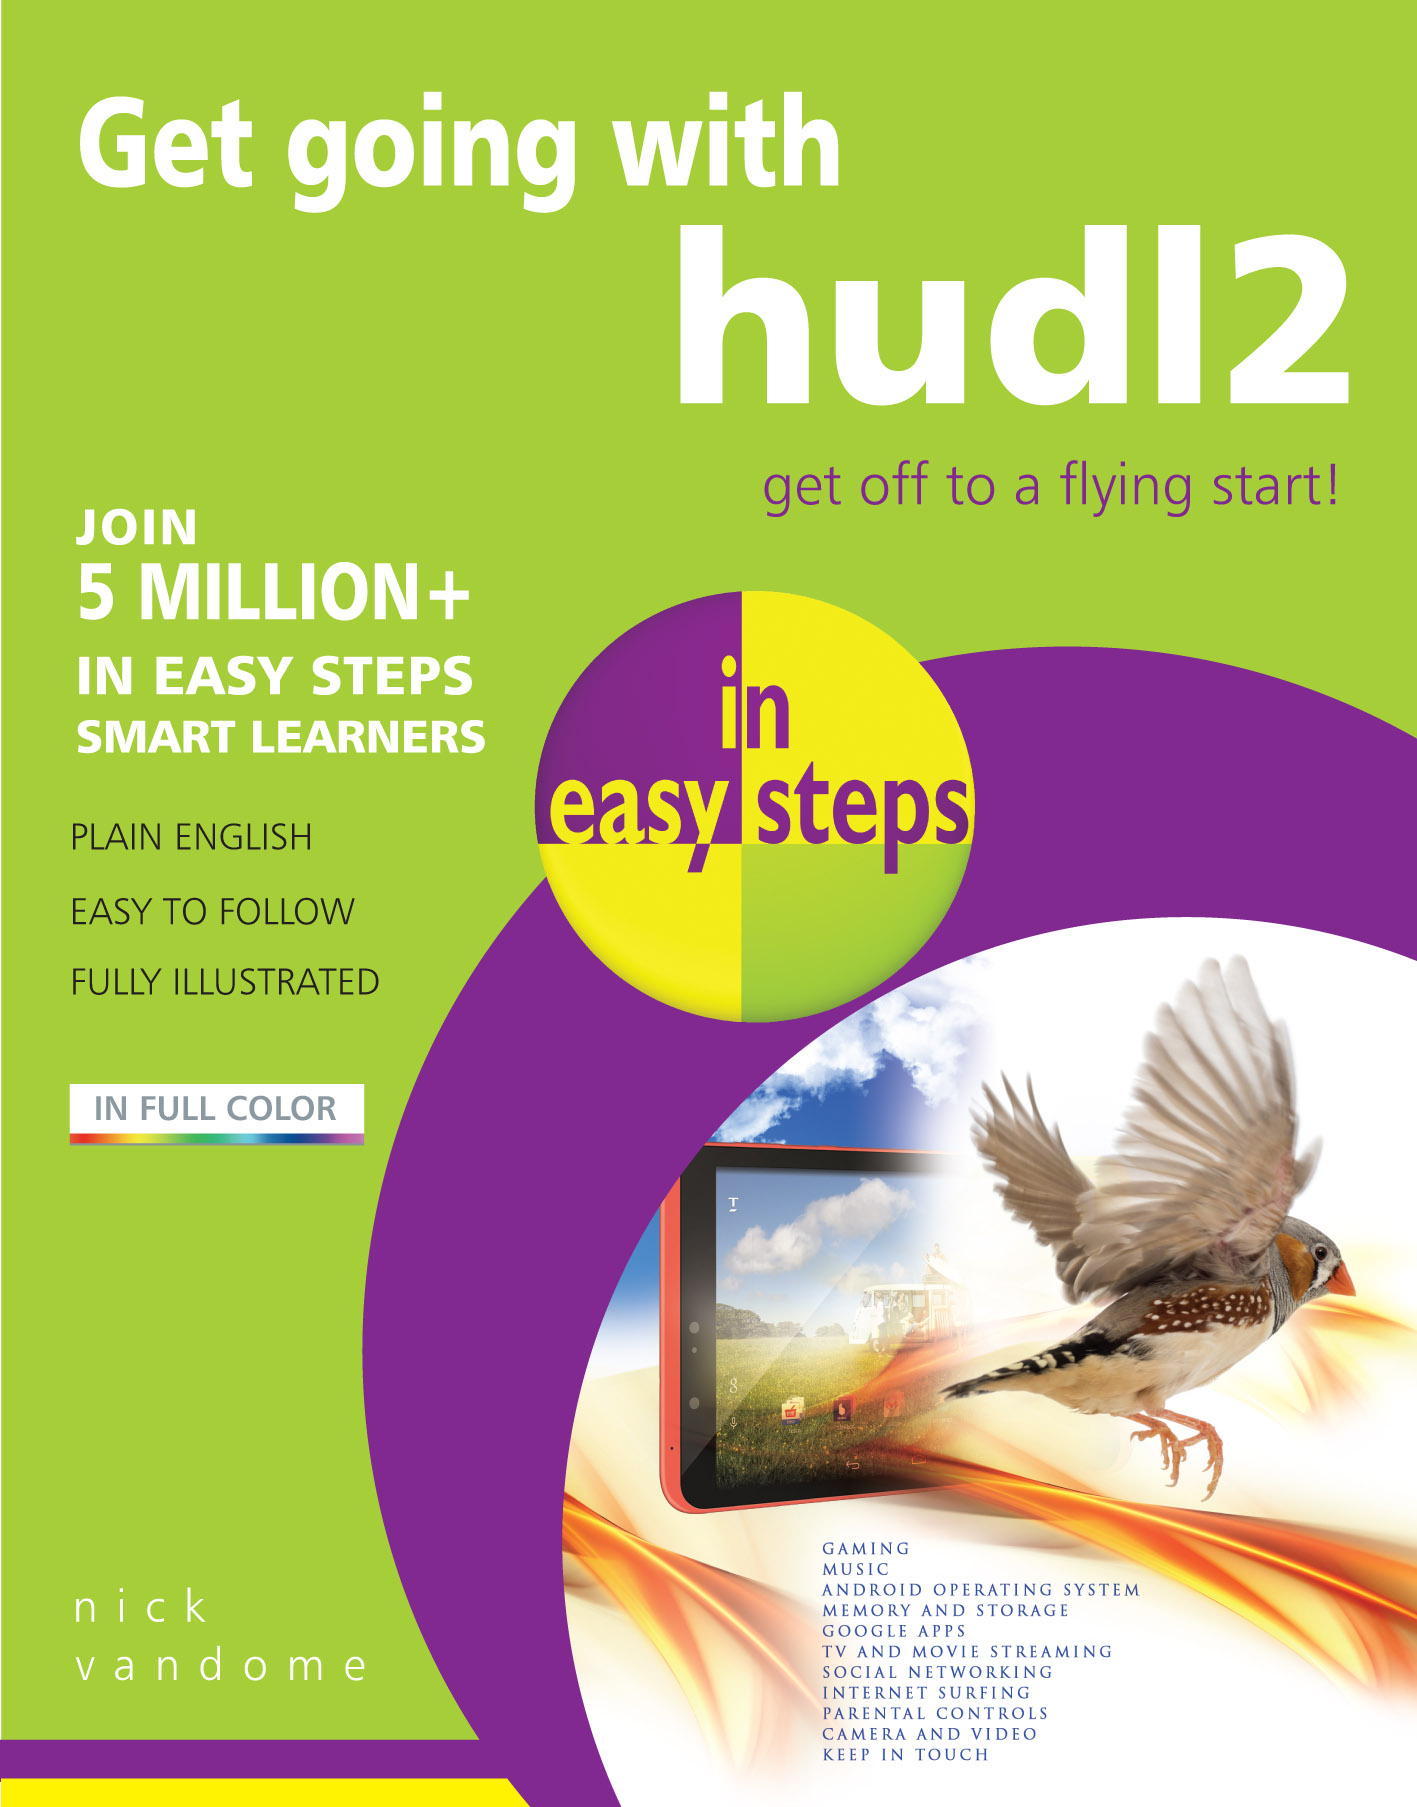 9781840786484 Get going with hudl2 in easy steps